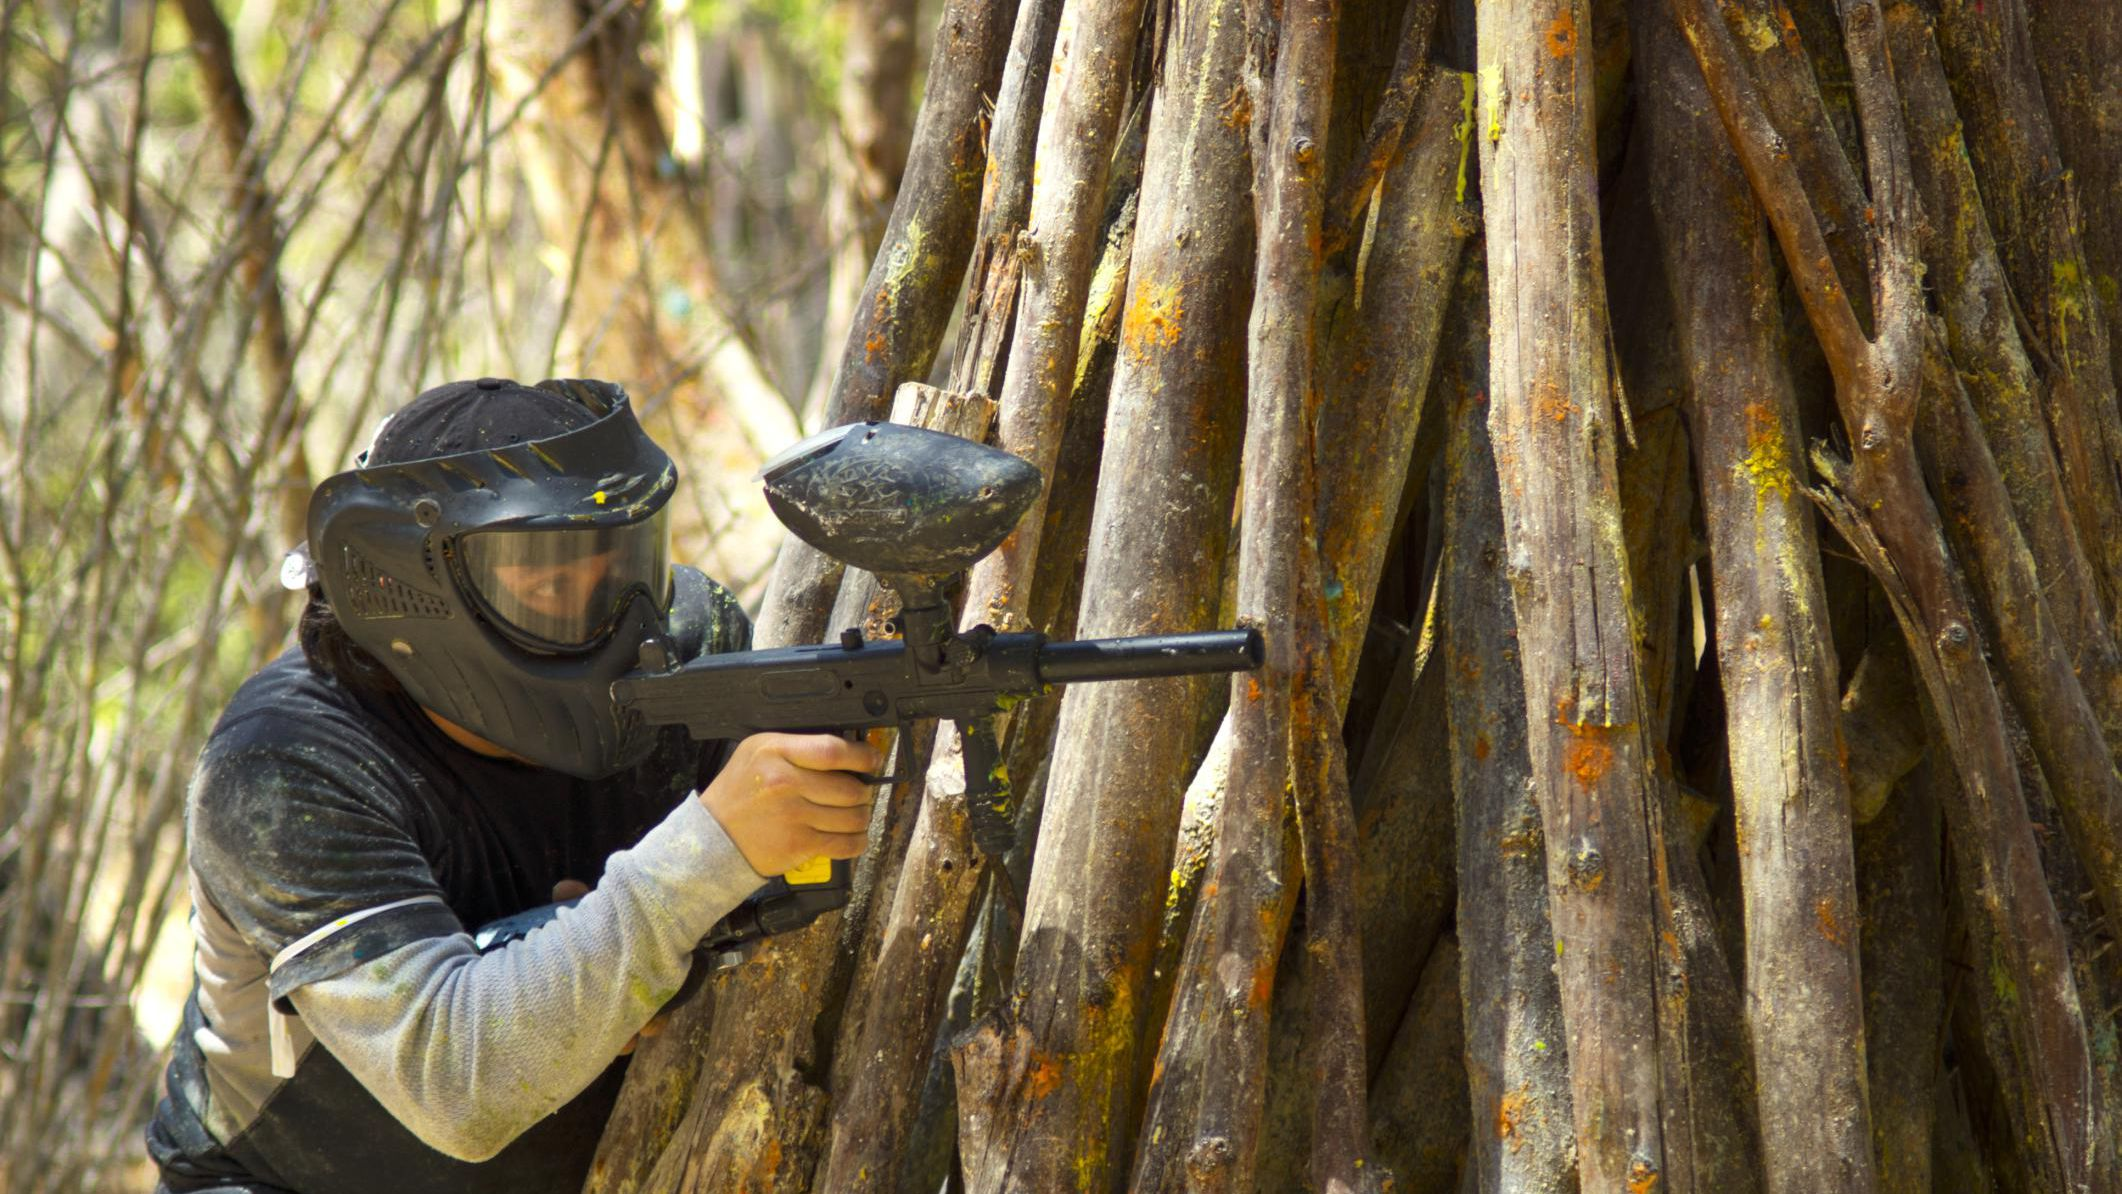 Playing Paintball for the First Time: What to Expect